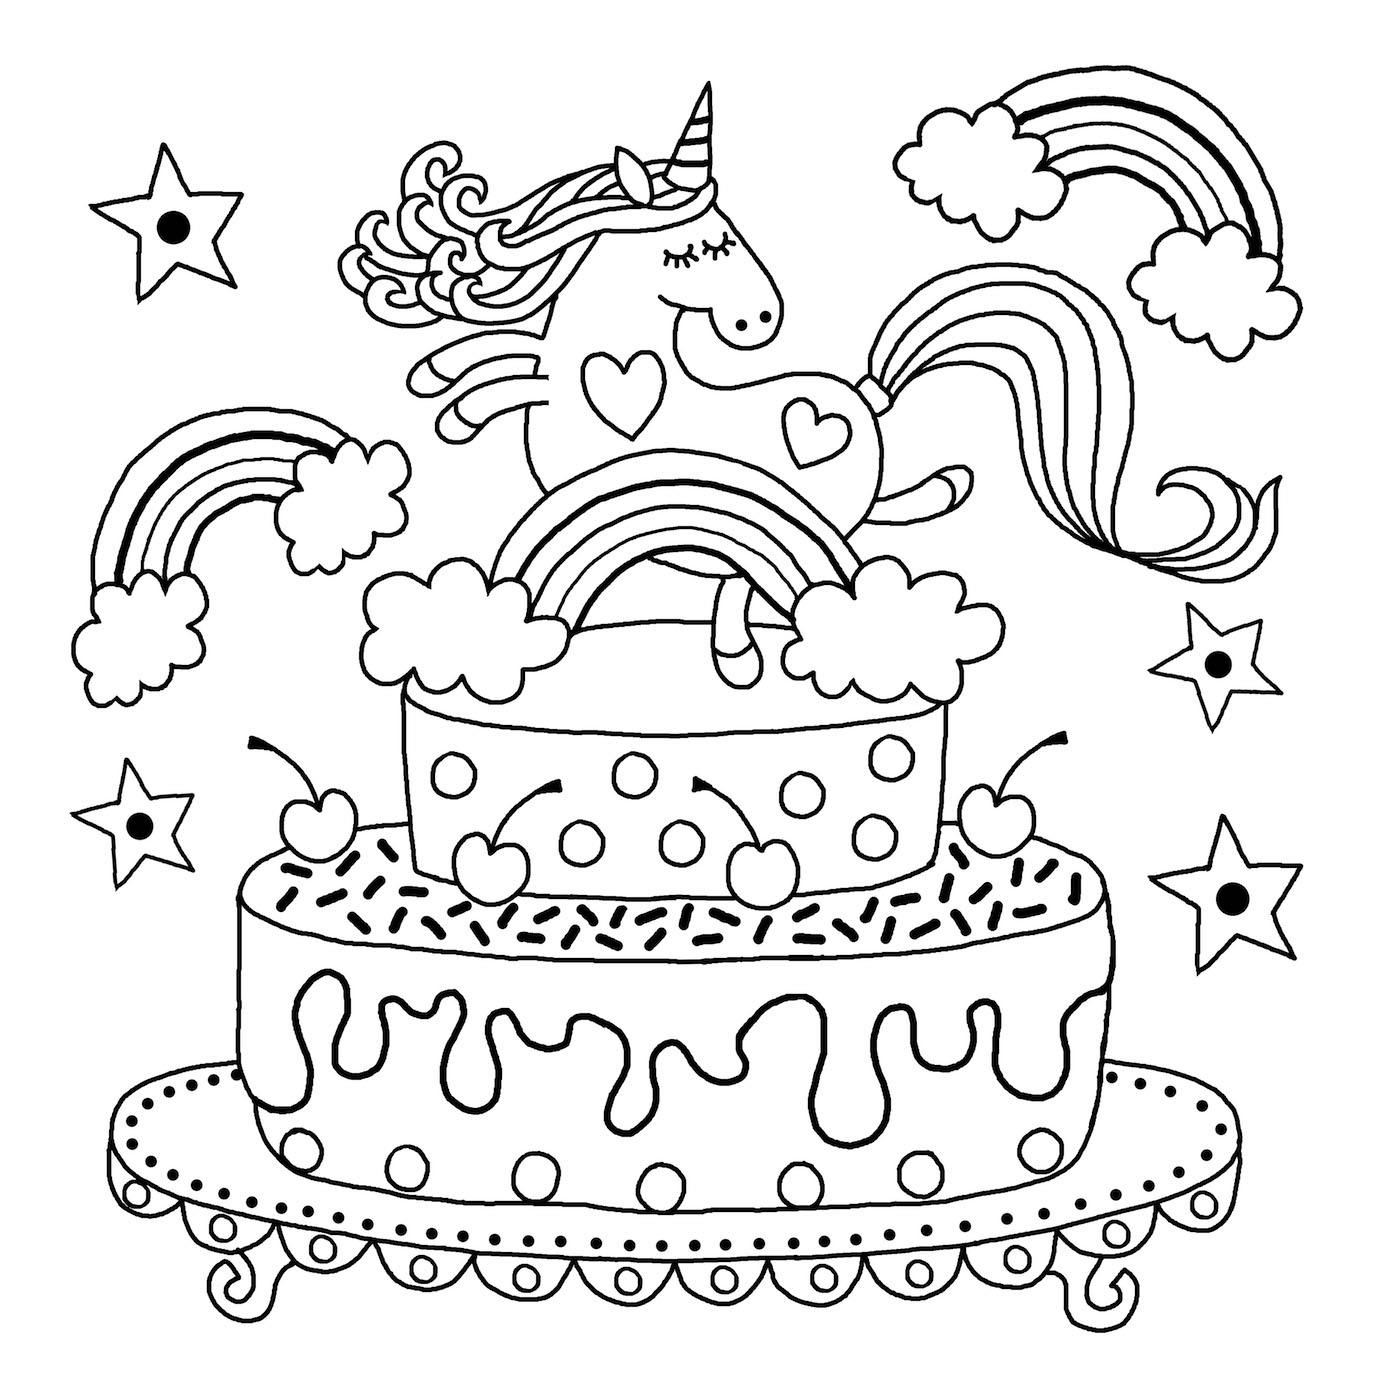 coloring worksheets unicorn 31 unicorn coloring pages for girls pics tunnel to unicorn worksheets coloring